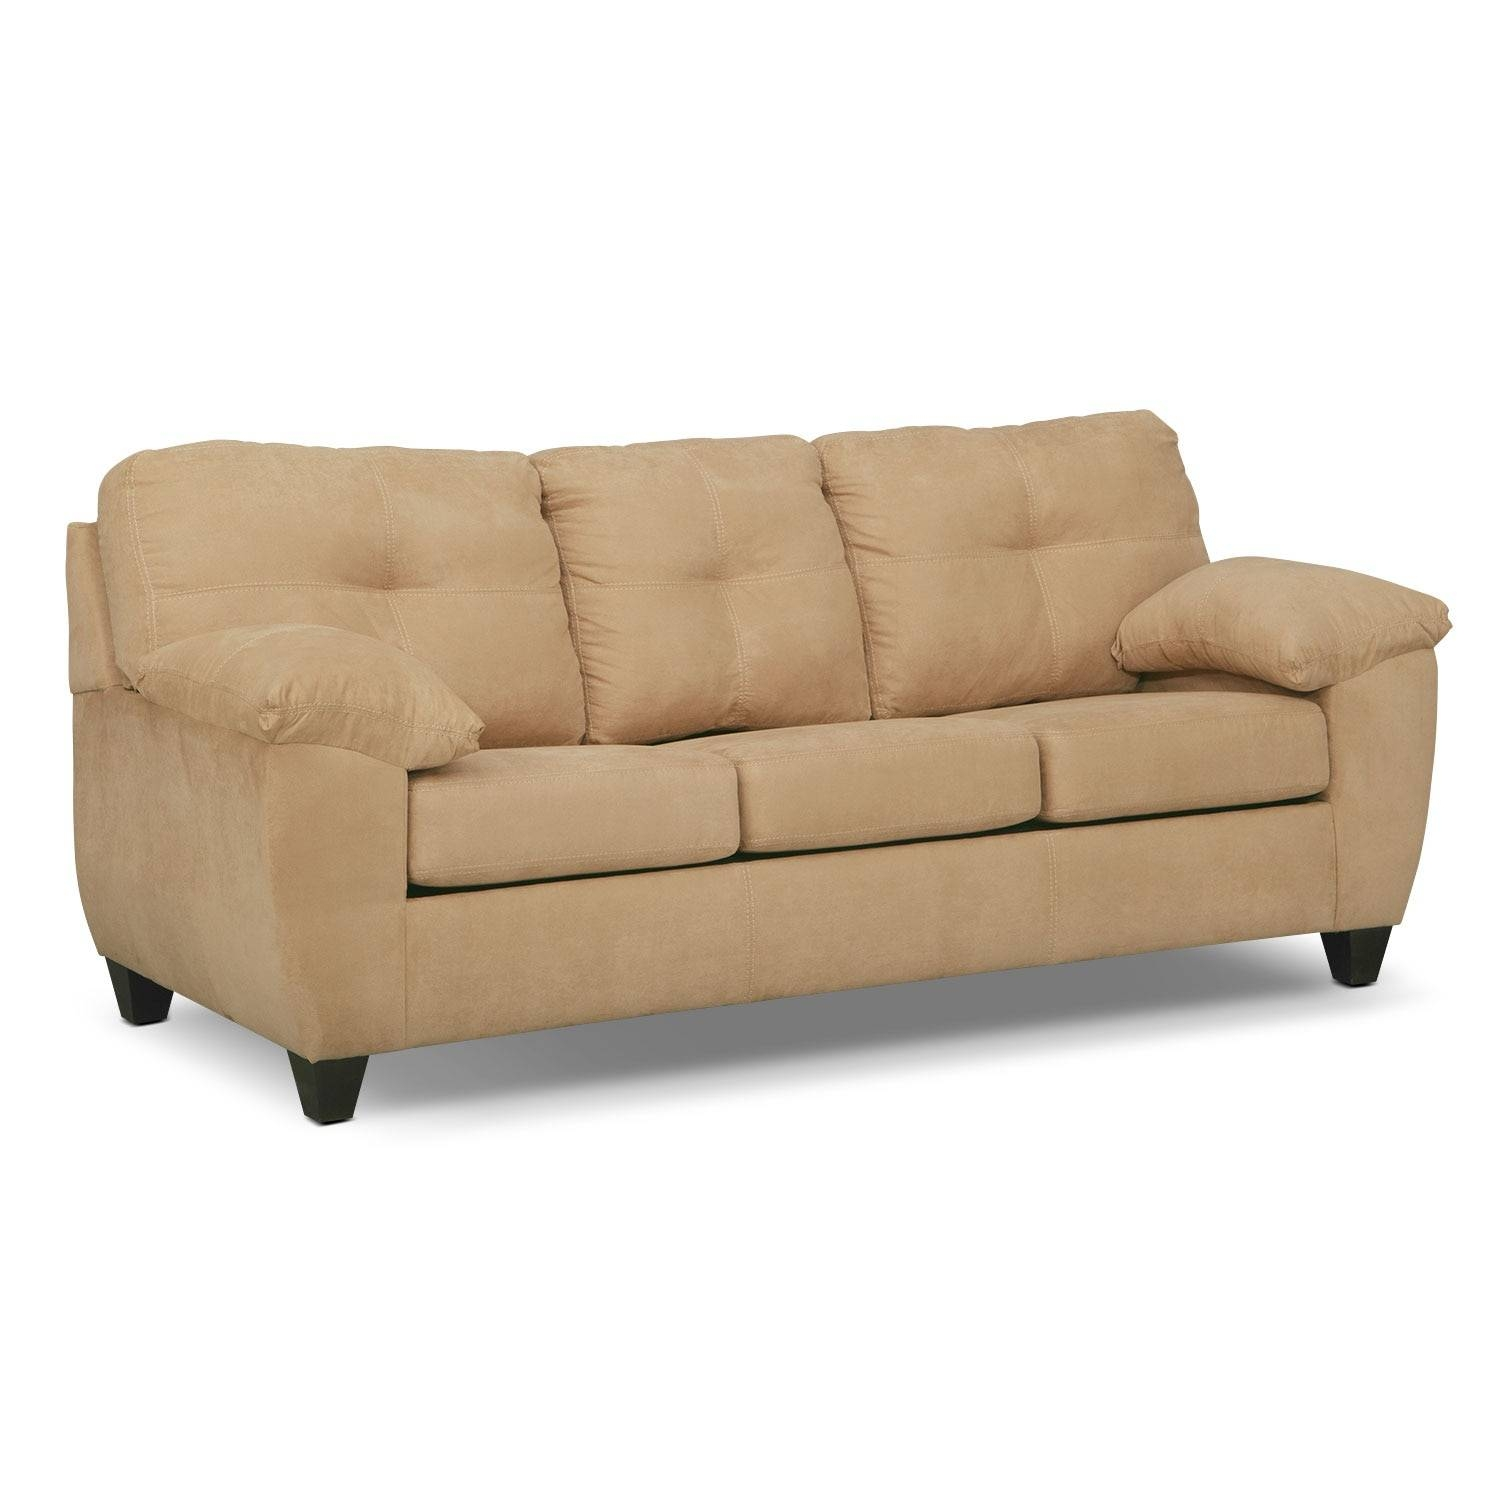 Sleeper Sofas | Value City Furniture | Value City Furniture for Sofa Sleepers Queen Size (Image 15 of 30)